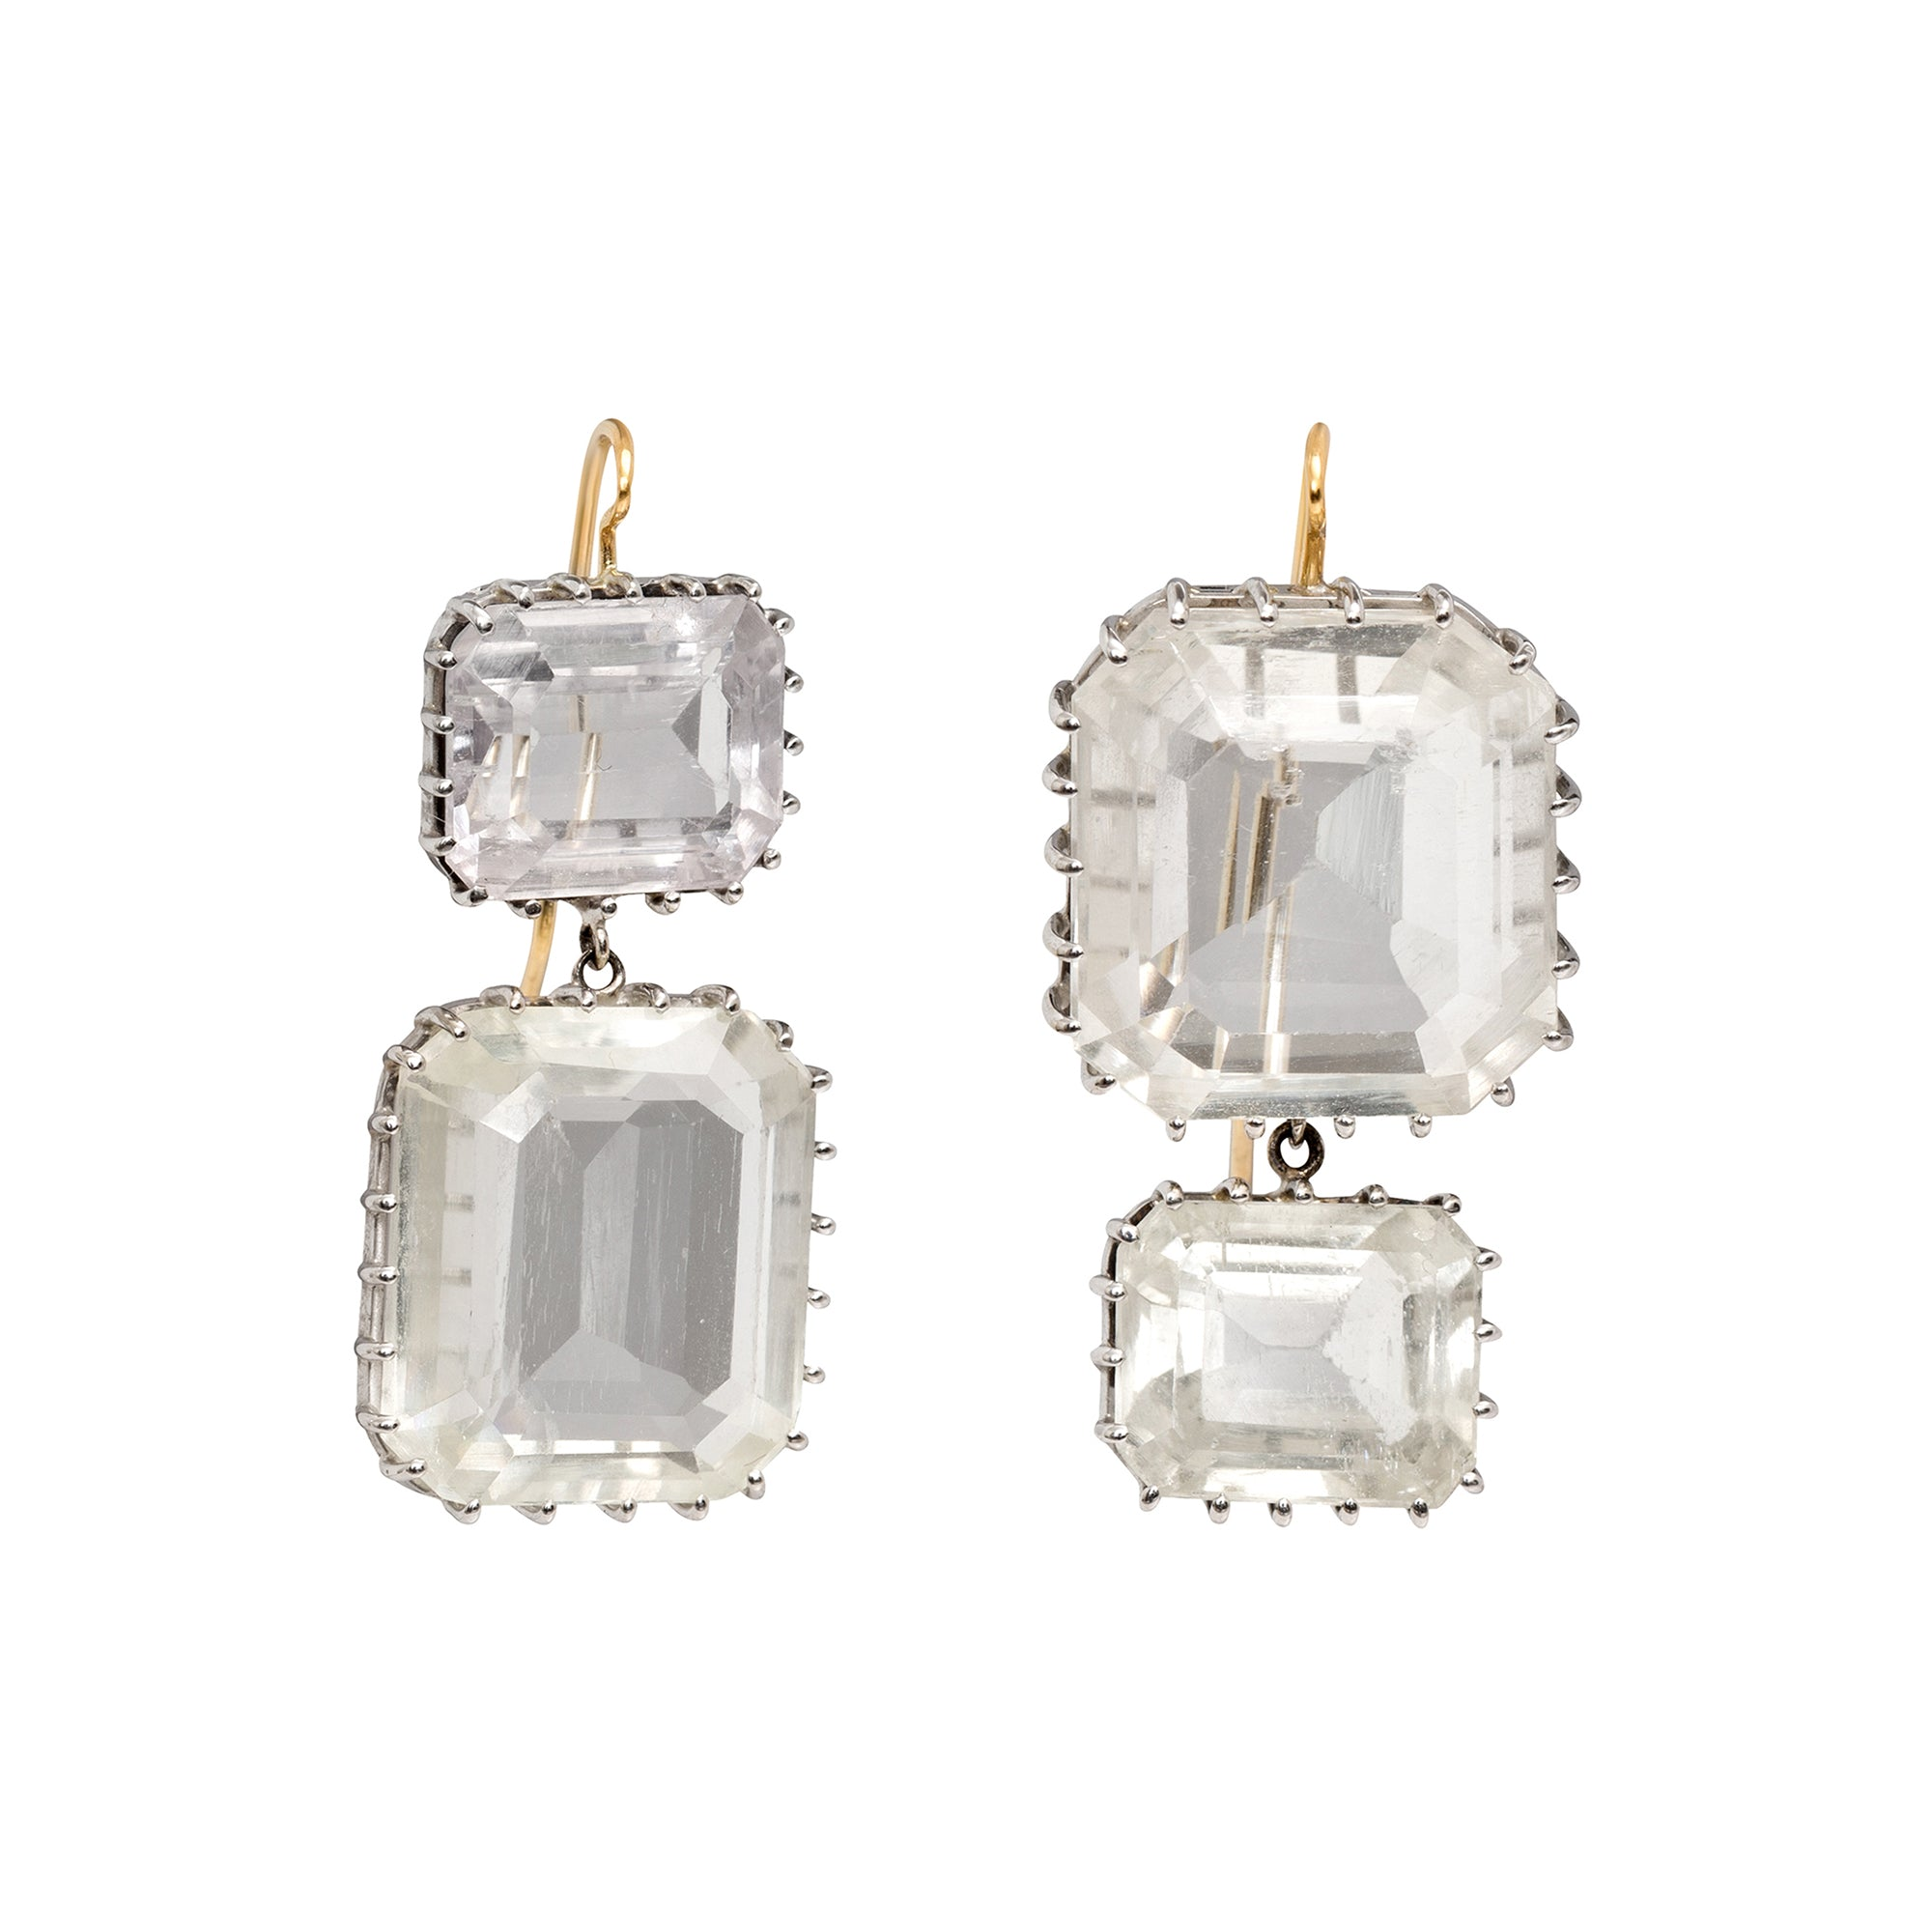 Quartz and Kunzite Earrings by Renee Lewis for Broken English Jewelry